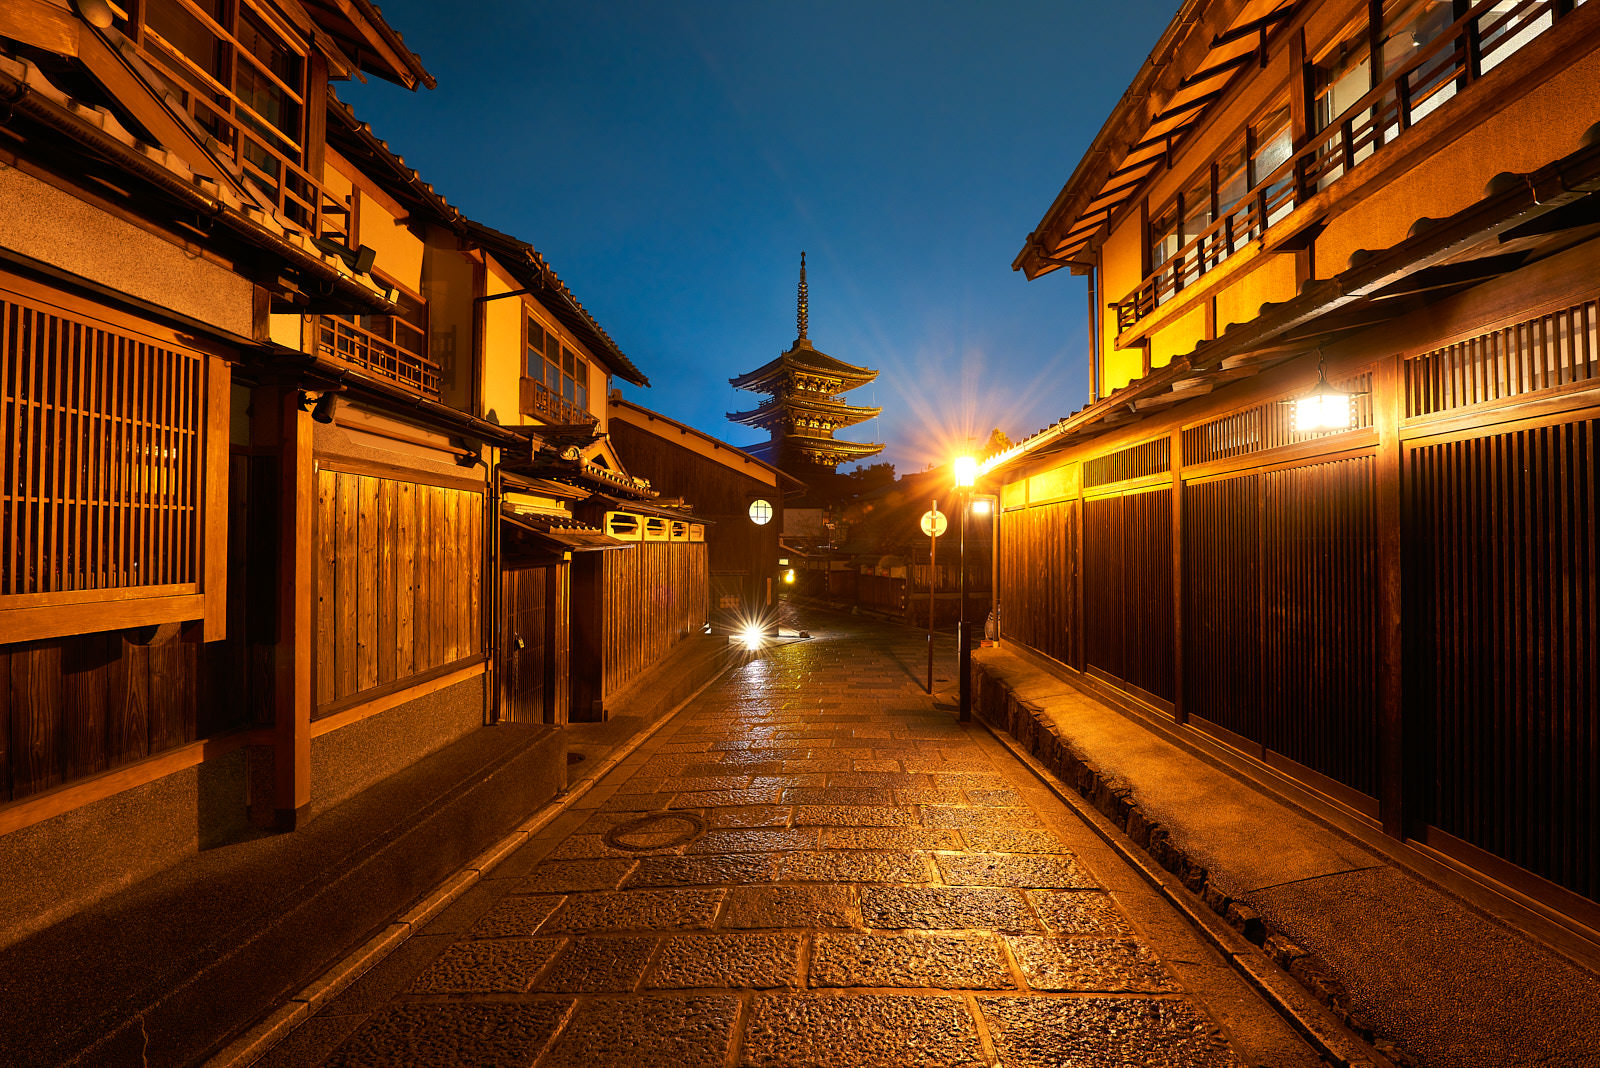 Street view in the well preserved Higashiyama district in Kyoto, Japan with a pagoda in the background at night